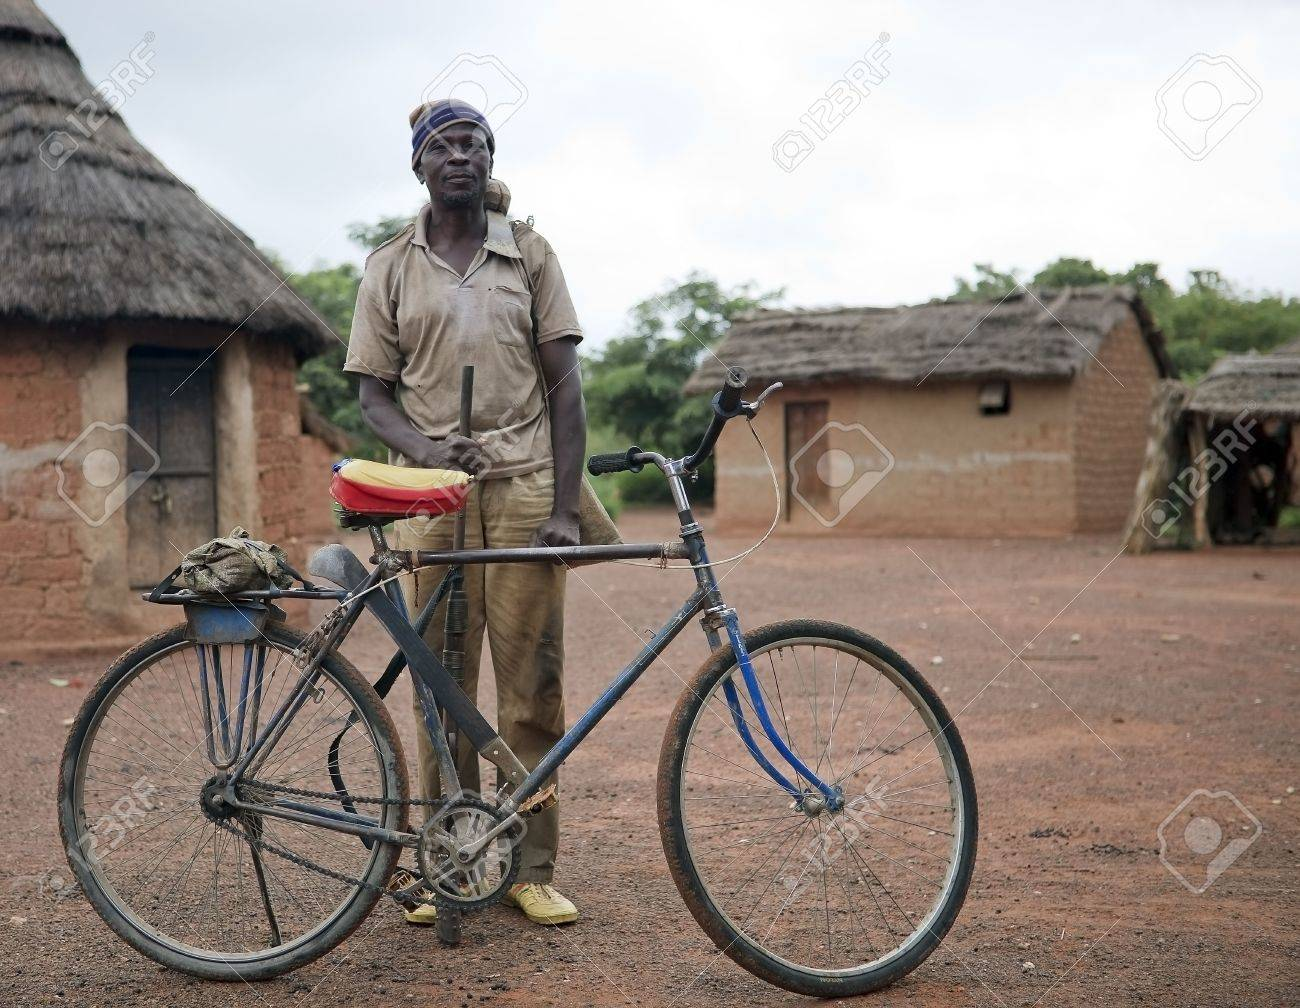 Country Senoufo,Burkina Faso - August 13,2009 : Senoufo man before leaving the camp, the Senoufo are divided into two groups, farmers and artisans. Stock Photo - 6886313